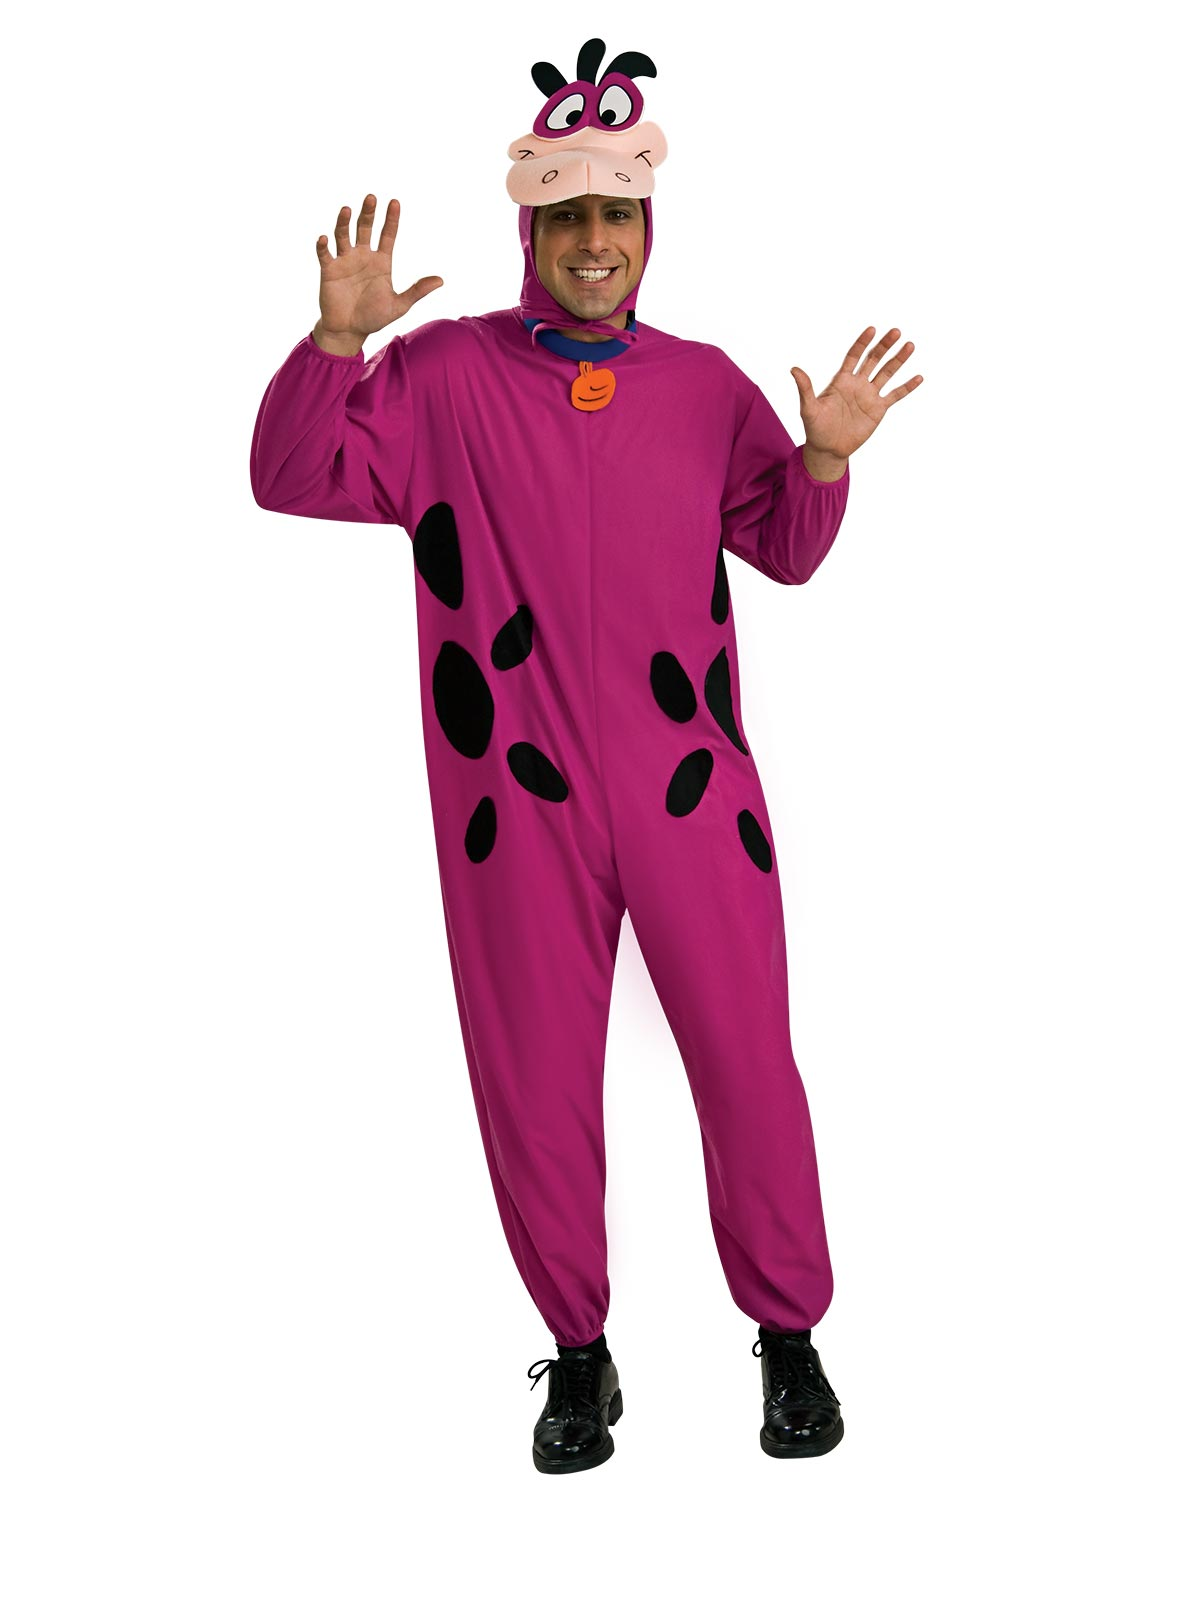 Dino The Flintstones Deluxe Costume - Buy Online Only